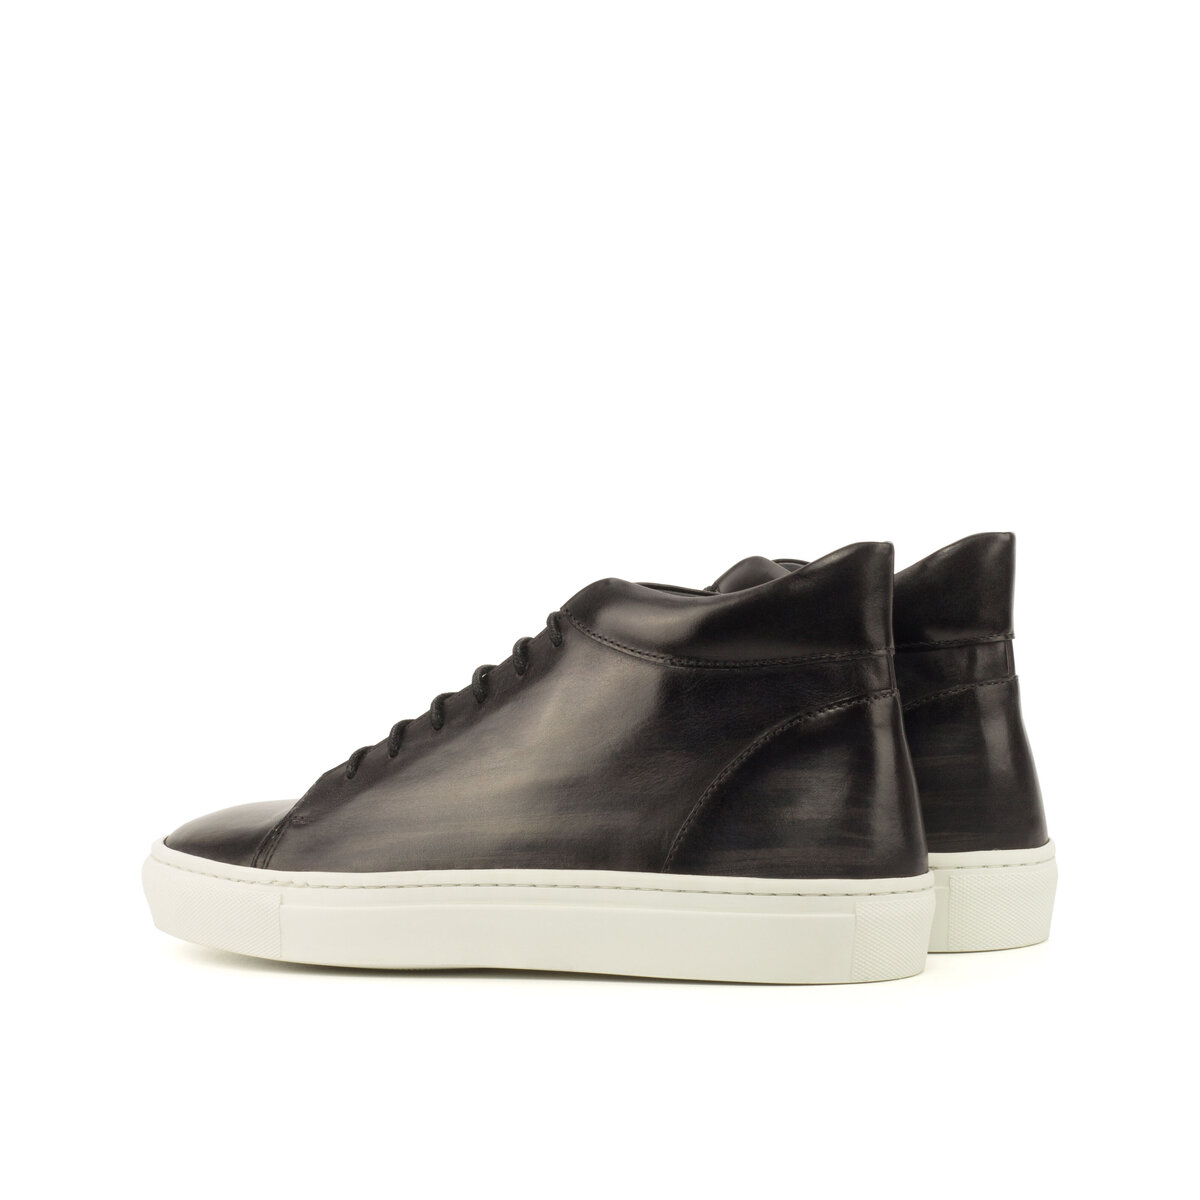 gps-shoes-high-top-patina-Grey-Box Calf Black-2